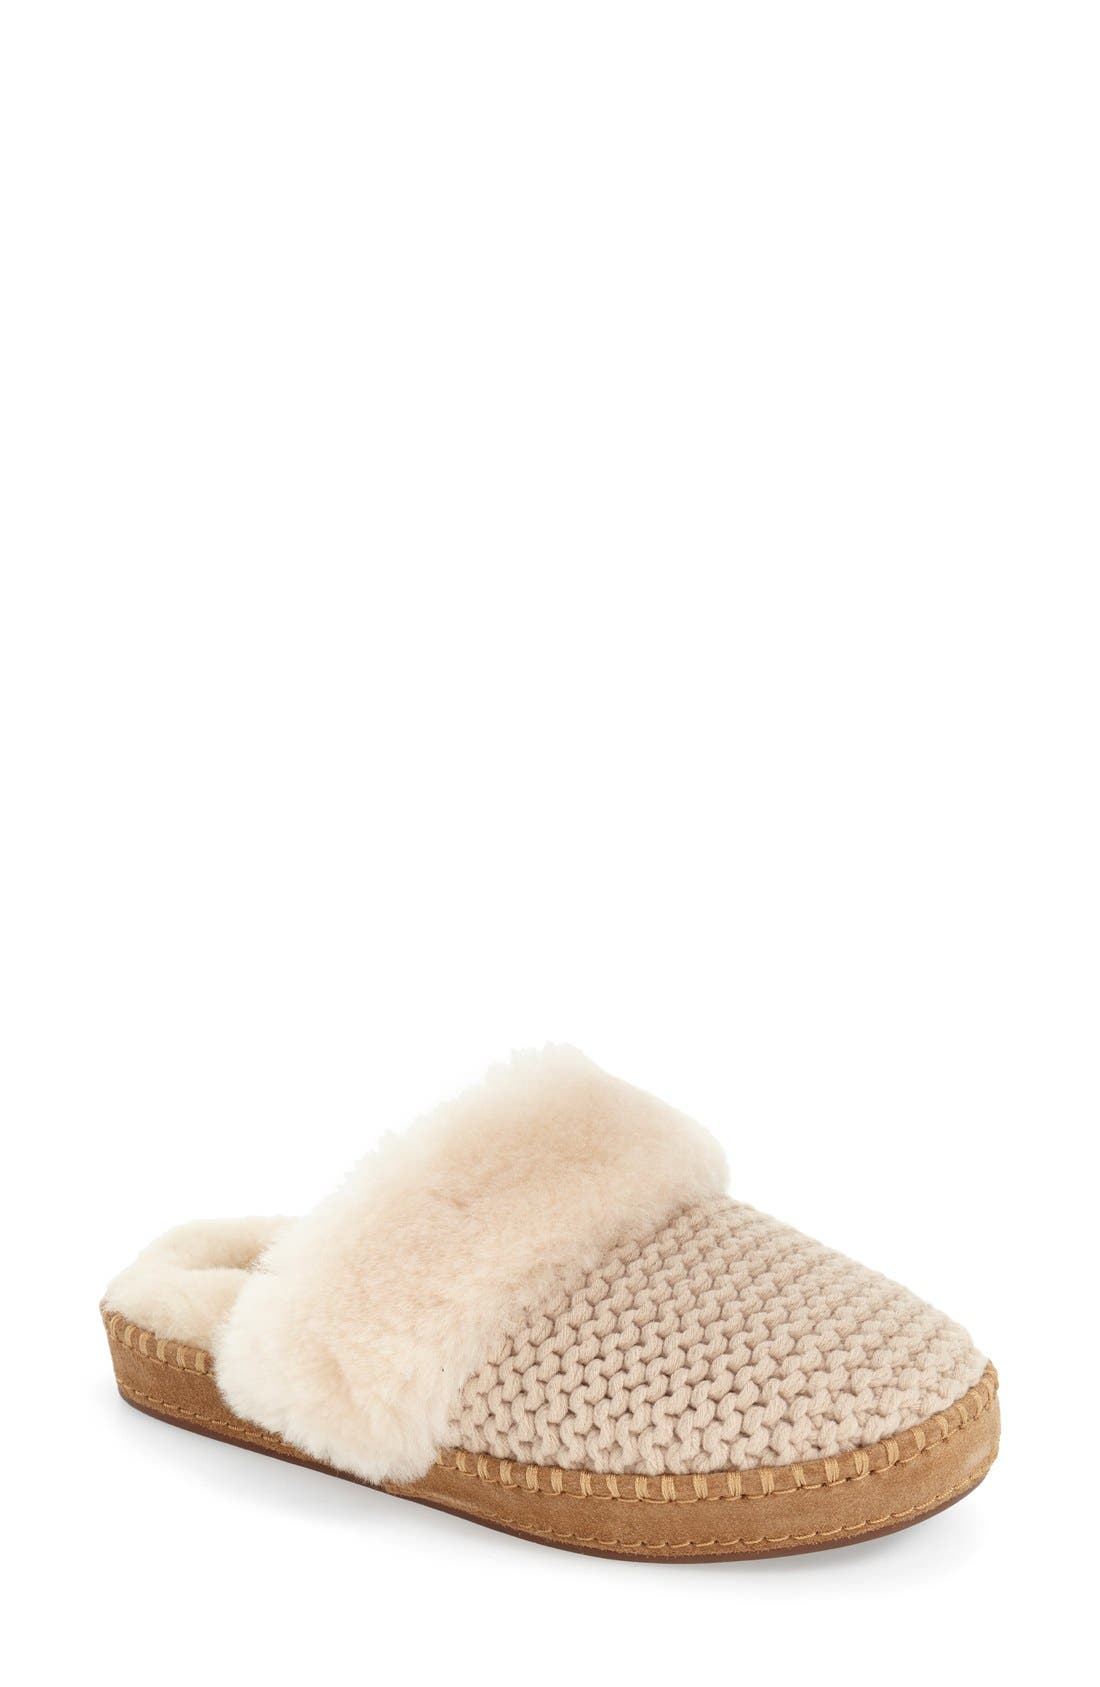 ugg slippers for women